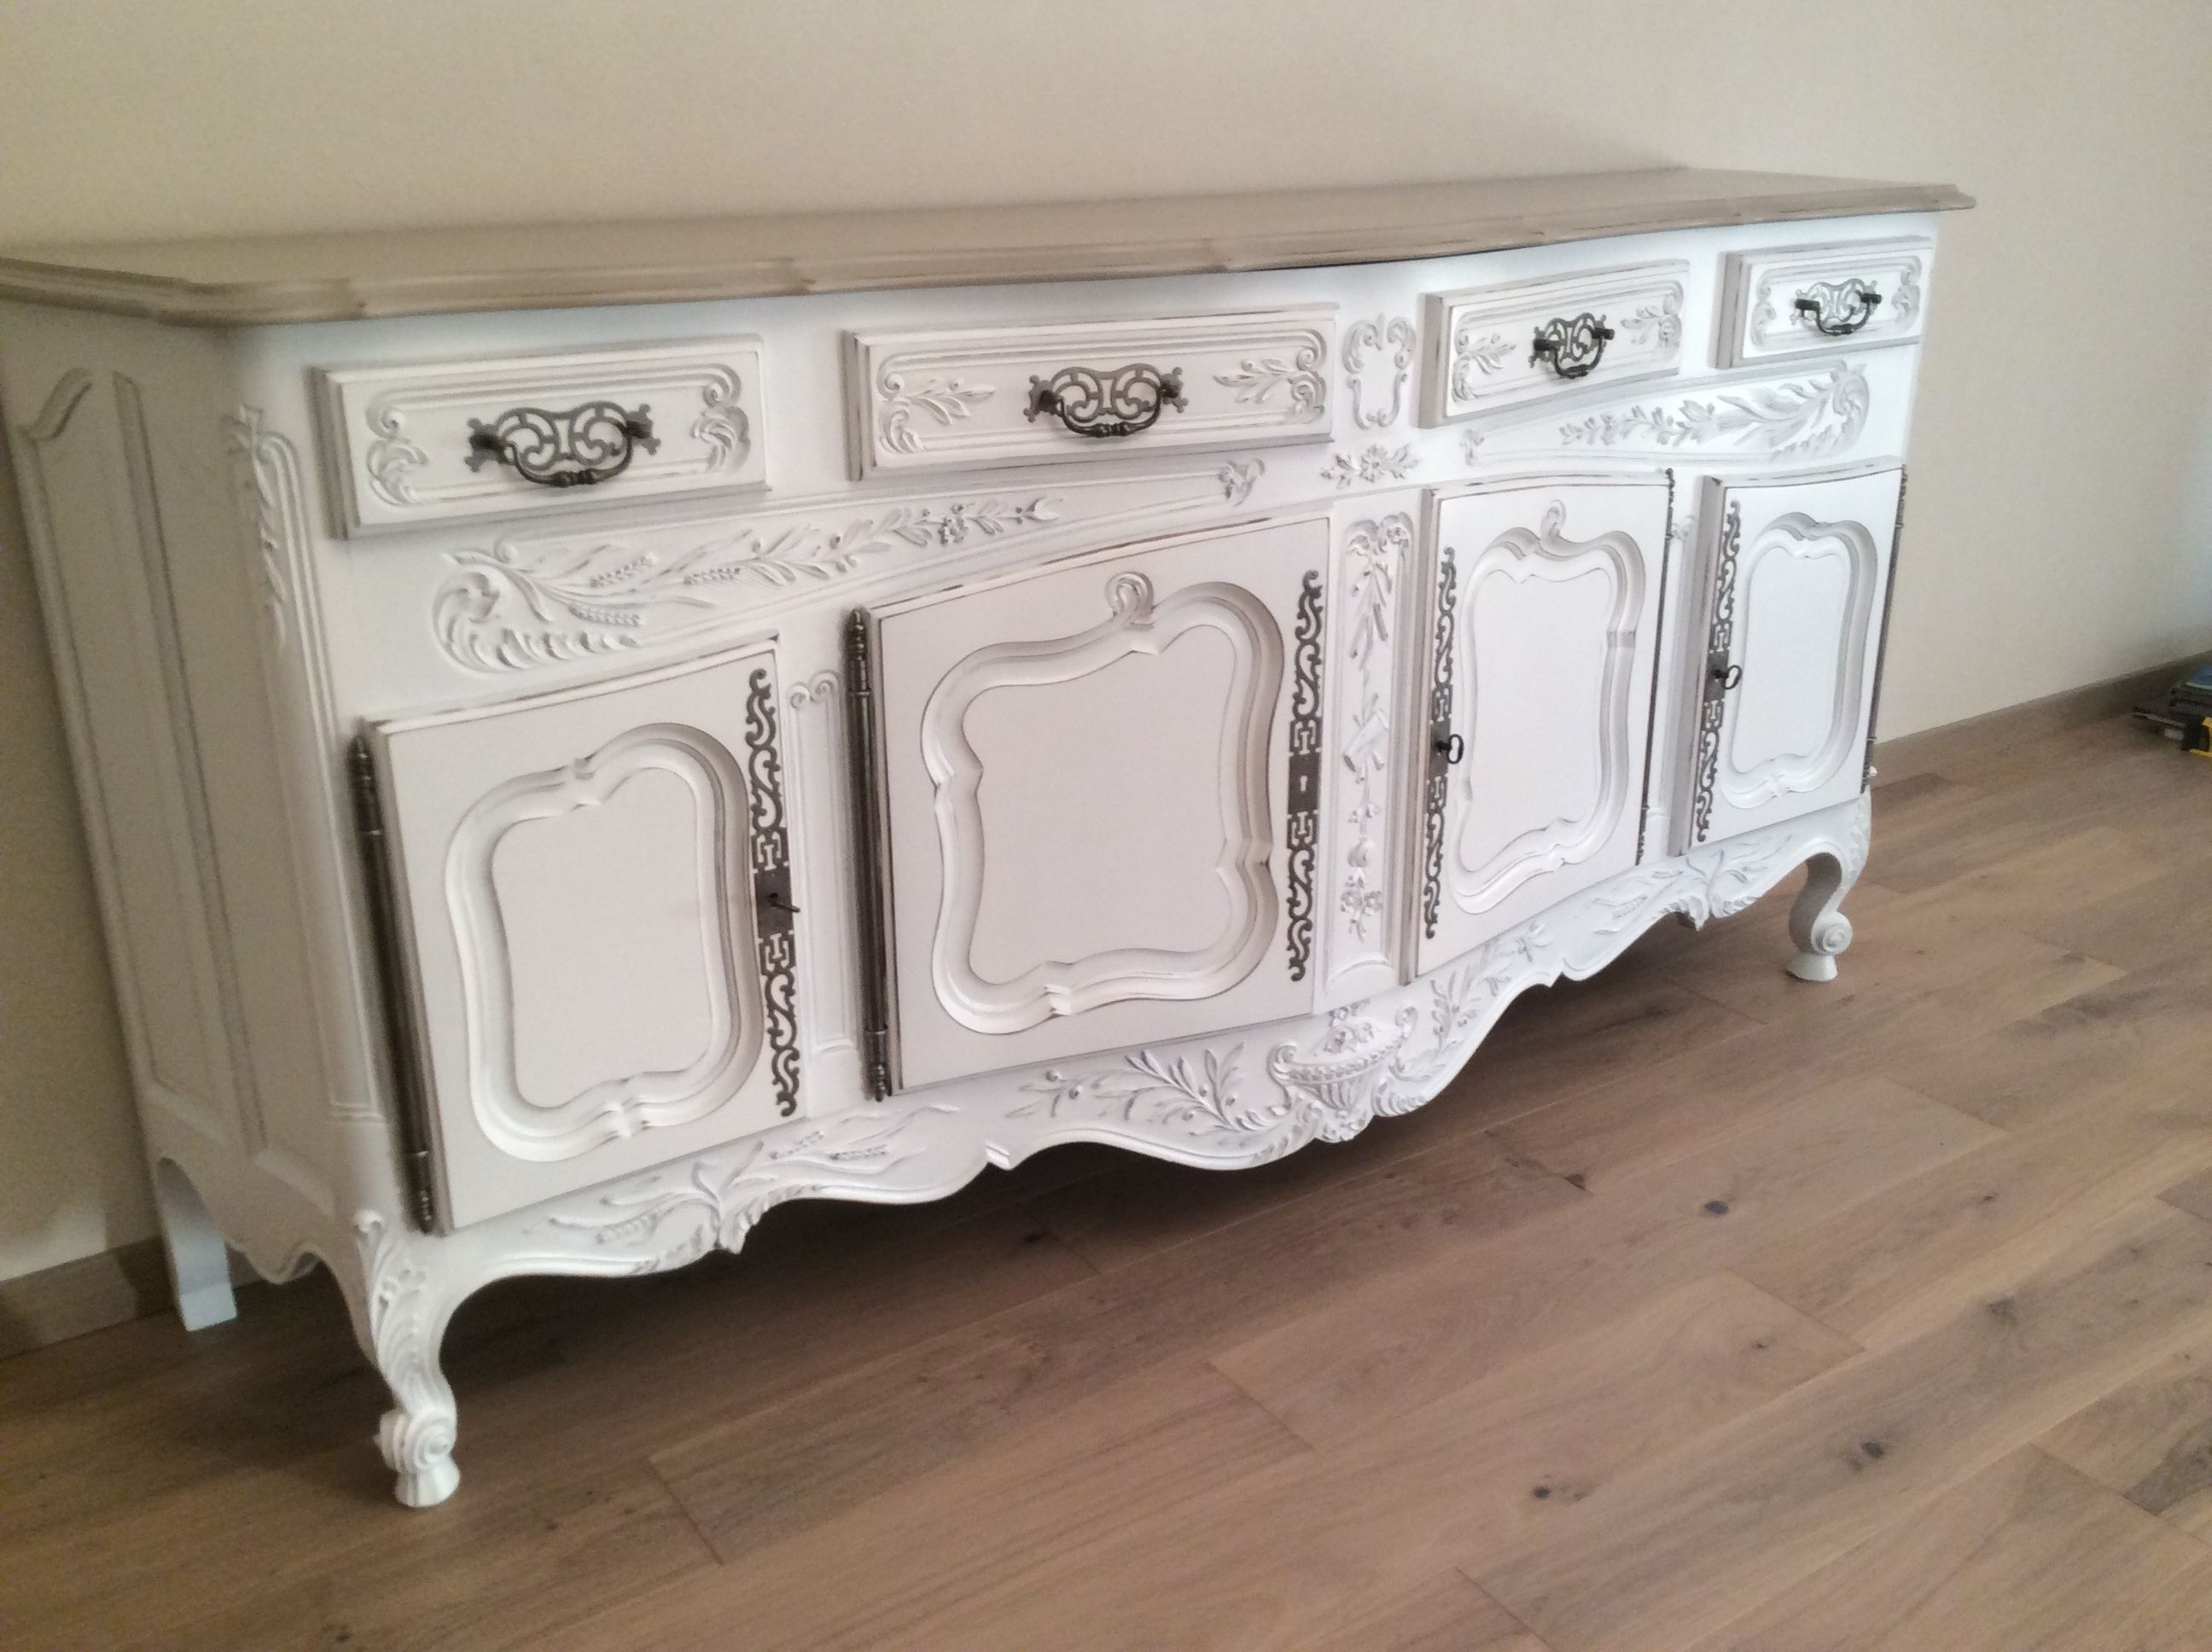 Bahut Style Louis Xv Provencal En Noyer Patine Blanc Plateau Taupe Relooking Salle A Manger Relooker Meuble Buffet Salle A Manger